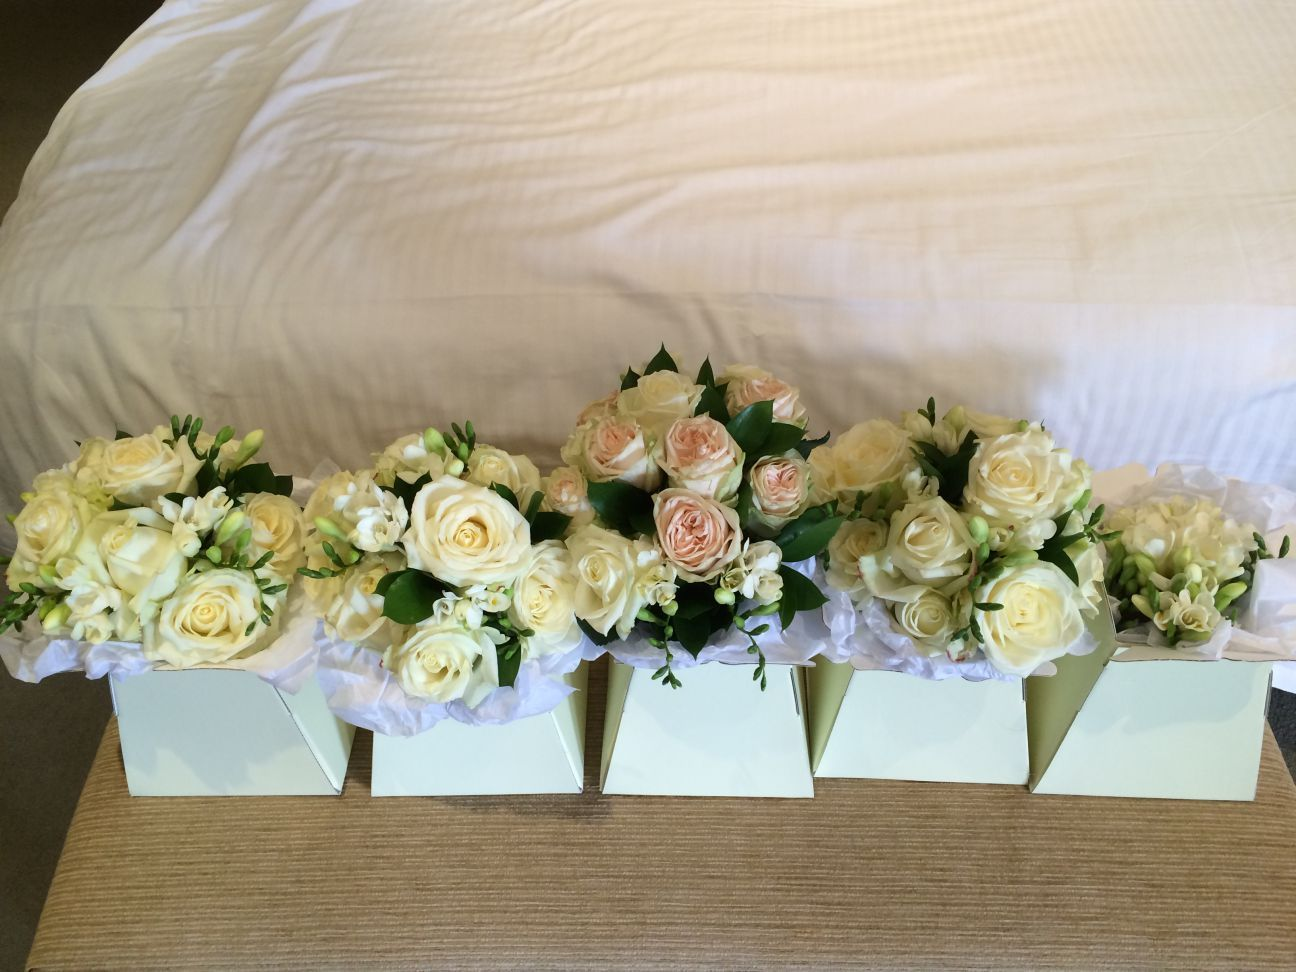 Wholesale Flower Supply To Trade And Public Plus Gift Bouquets